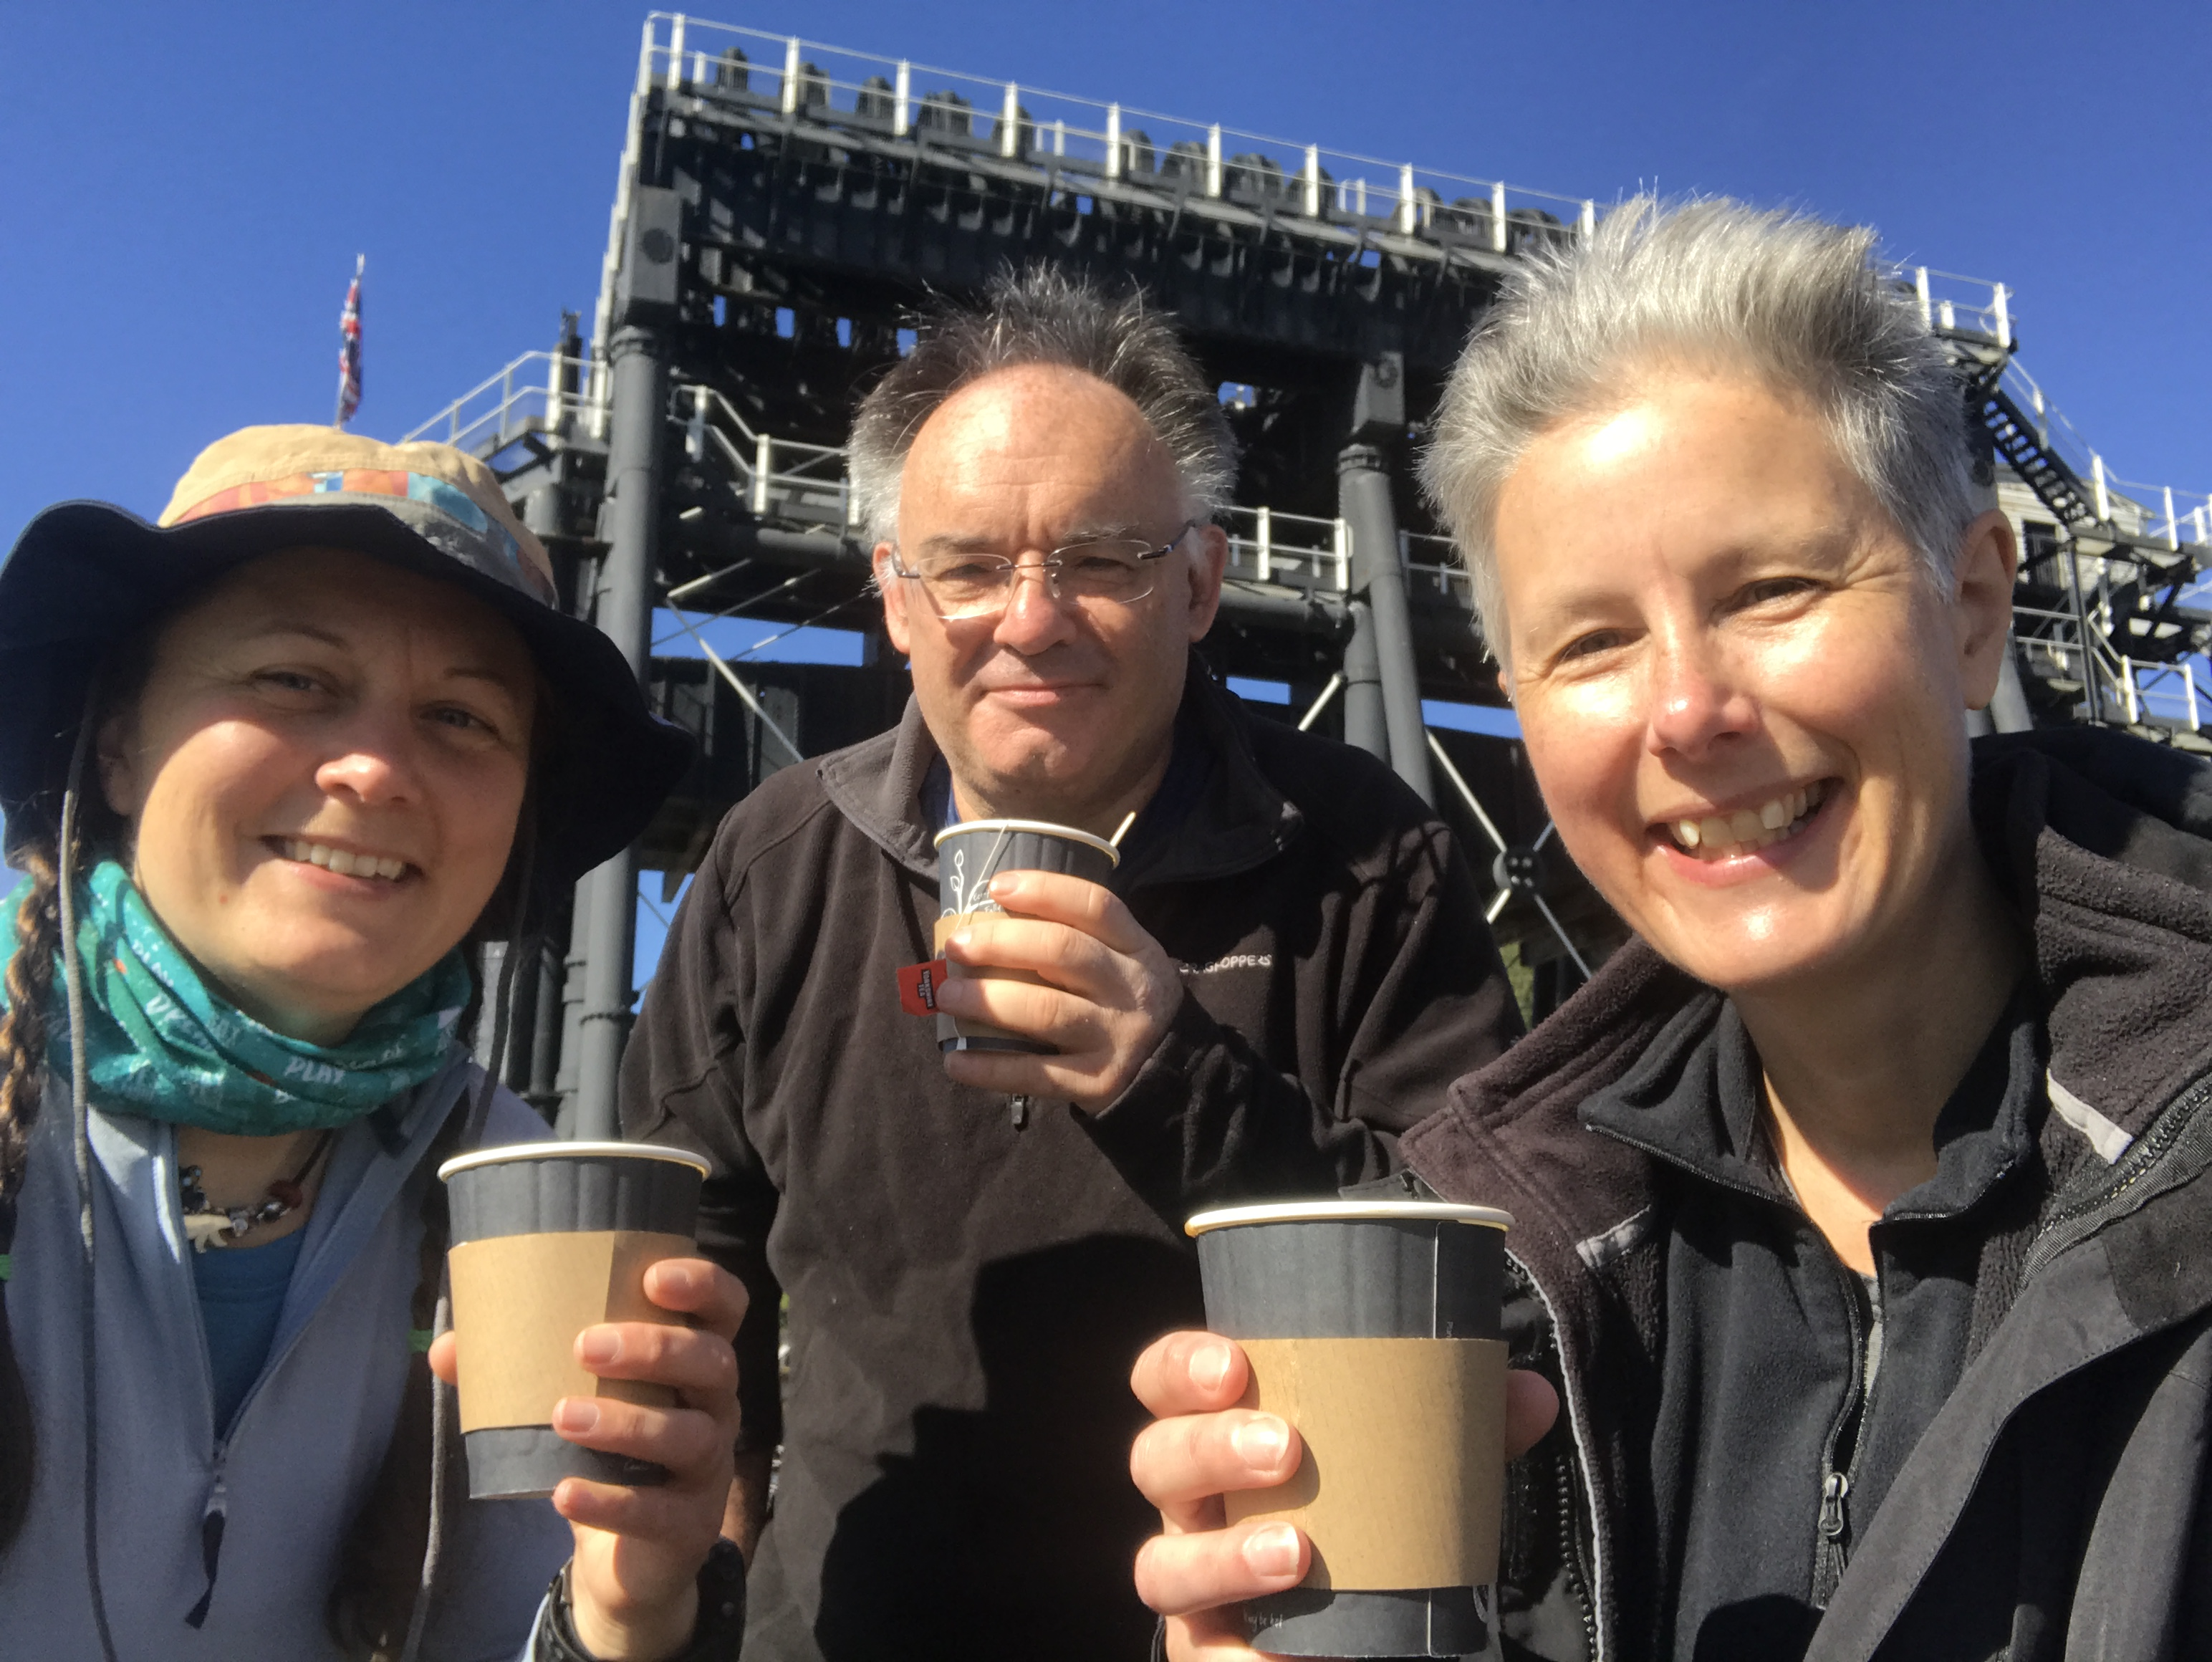 a selfie of three people with paper cups of tea in front of the Anderton boat lift.